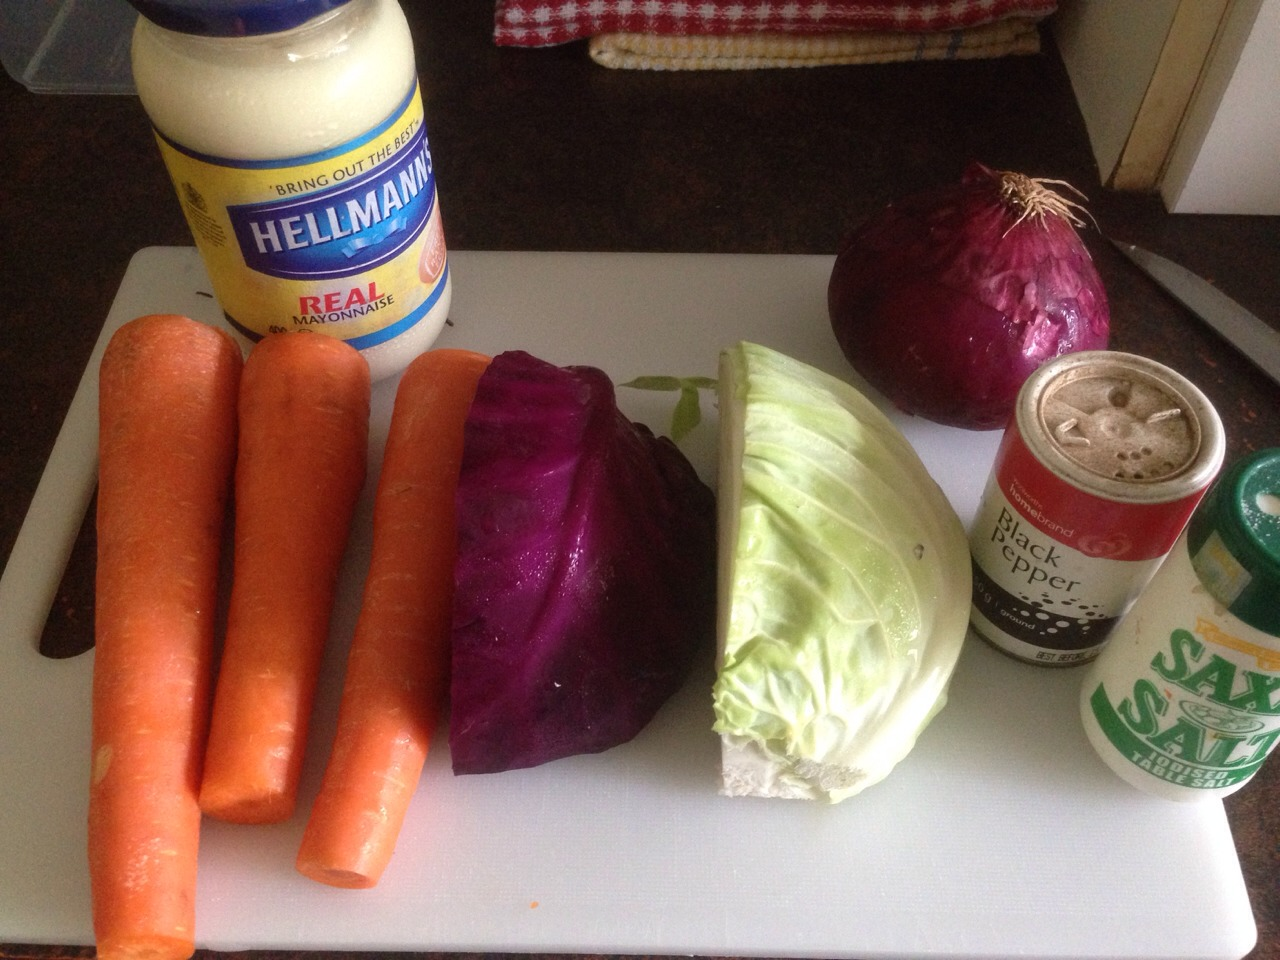 All you need for coleslaw, 3 carrots,1/4 white cabbage 1/4 red cabbage 1 onion. Salt and pepper and mayonnaise :)